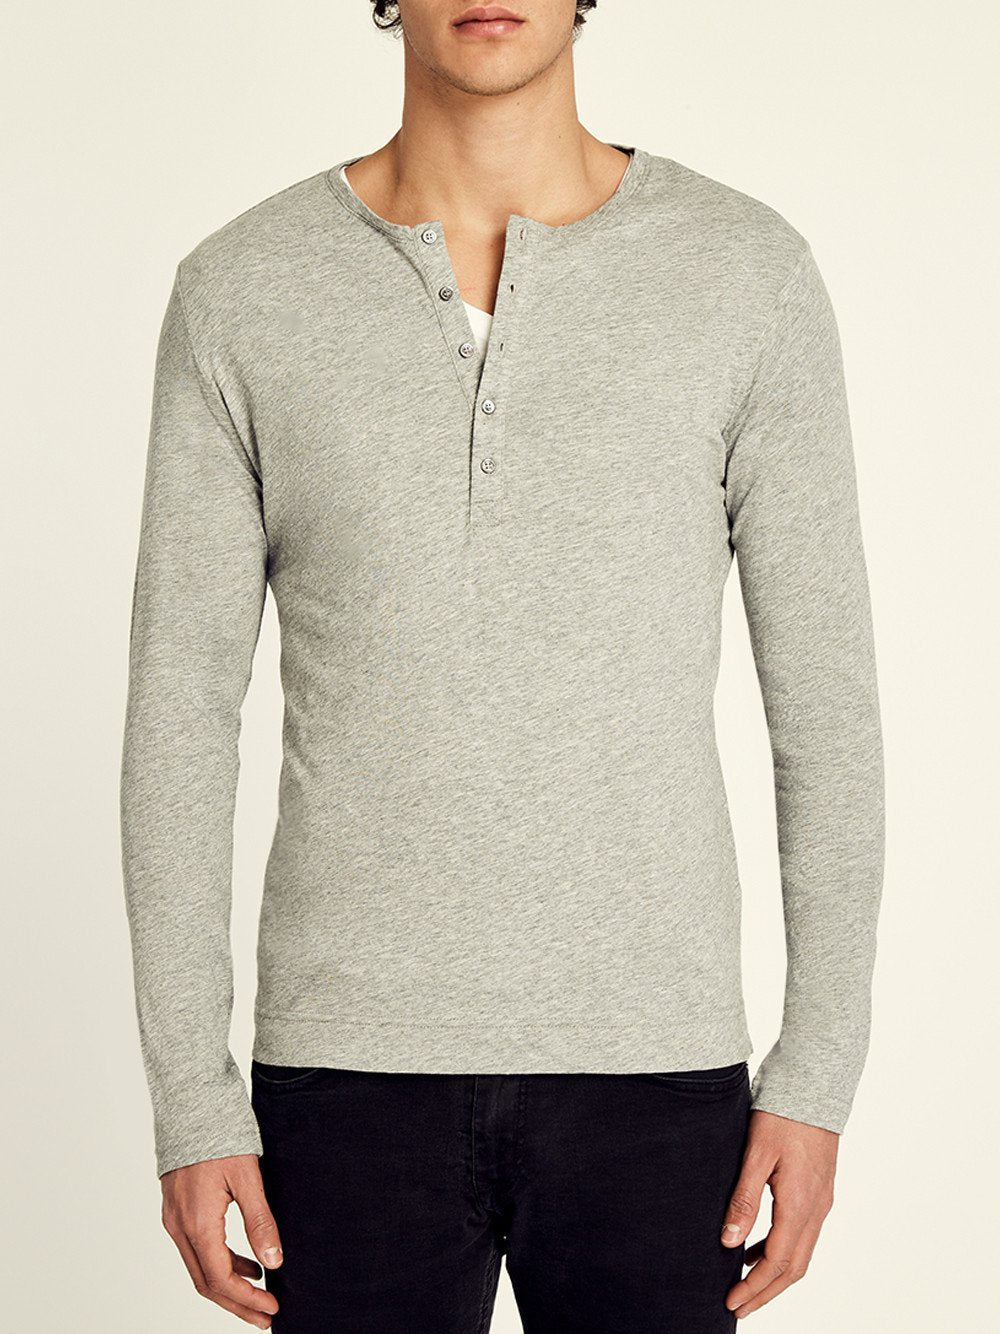 Pima Cotton Long Sleeve Henley T-shirt